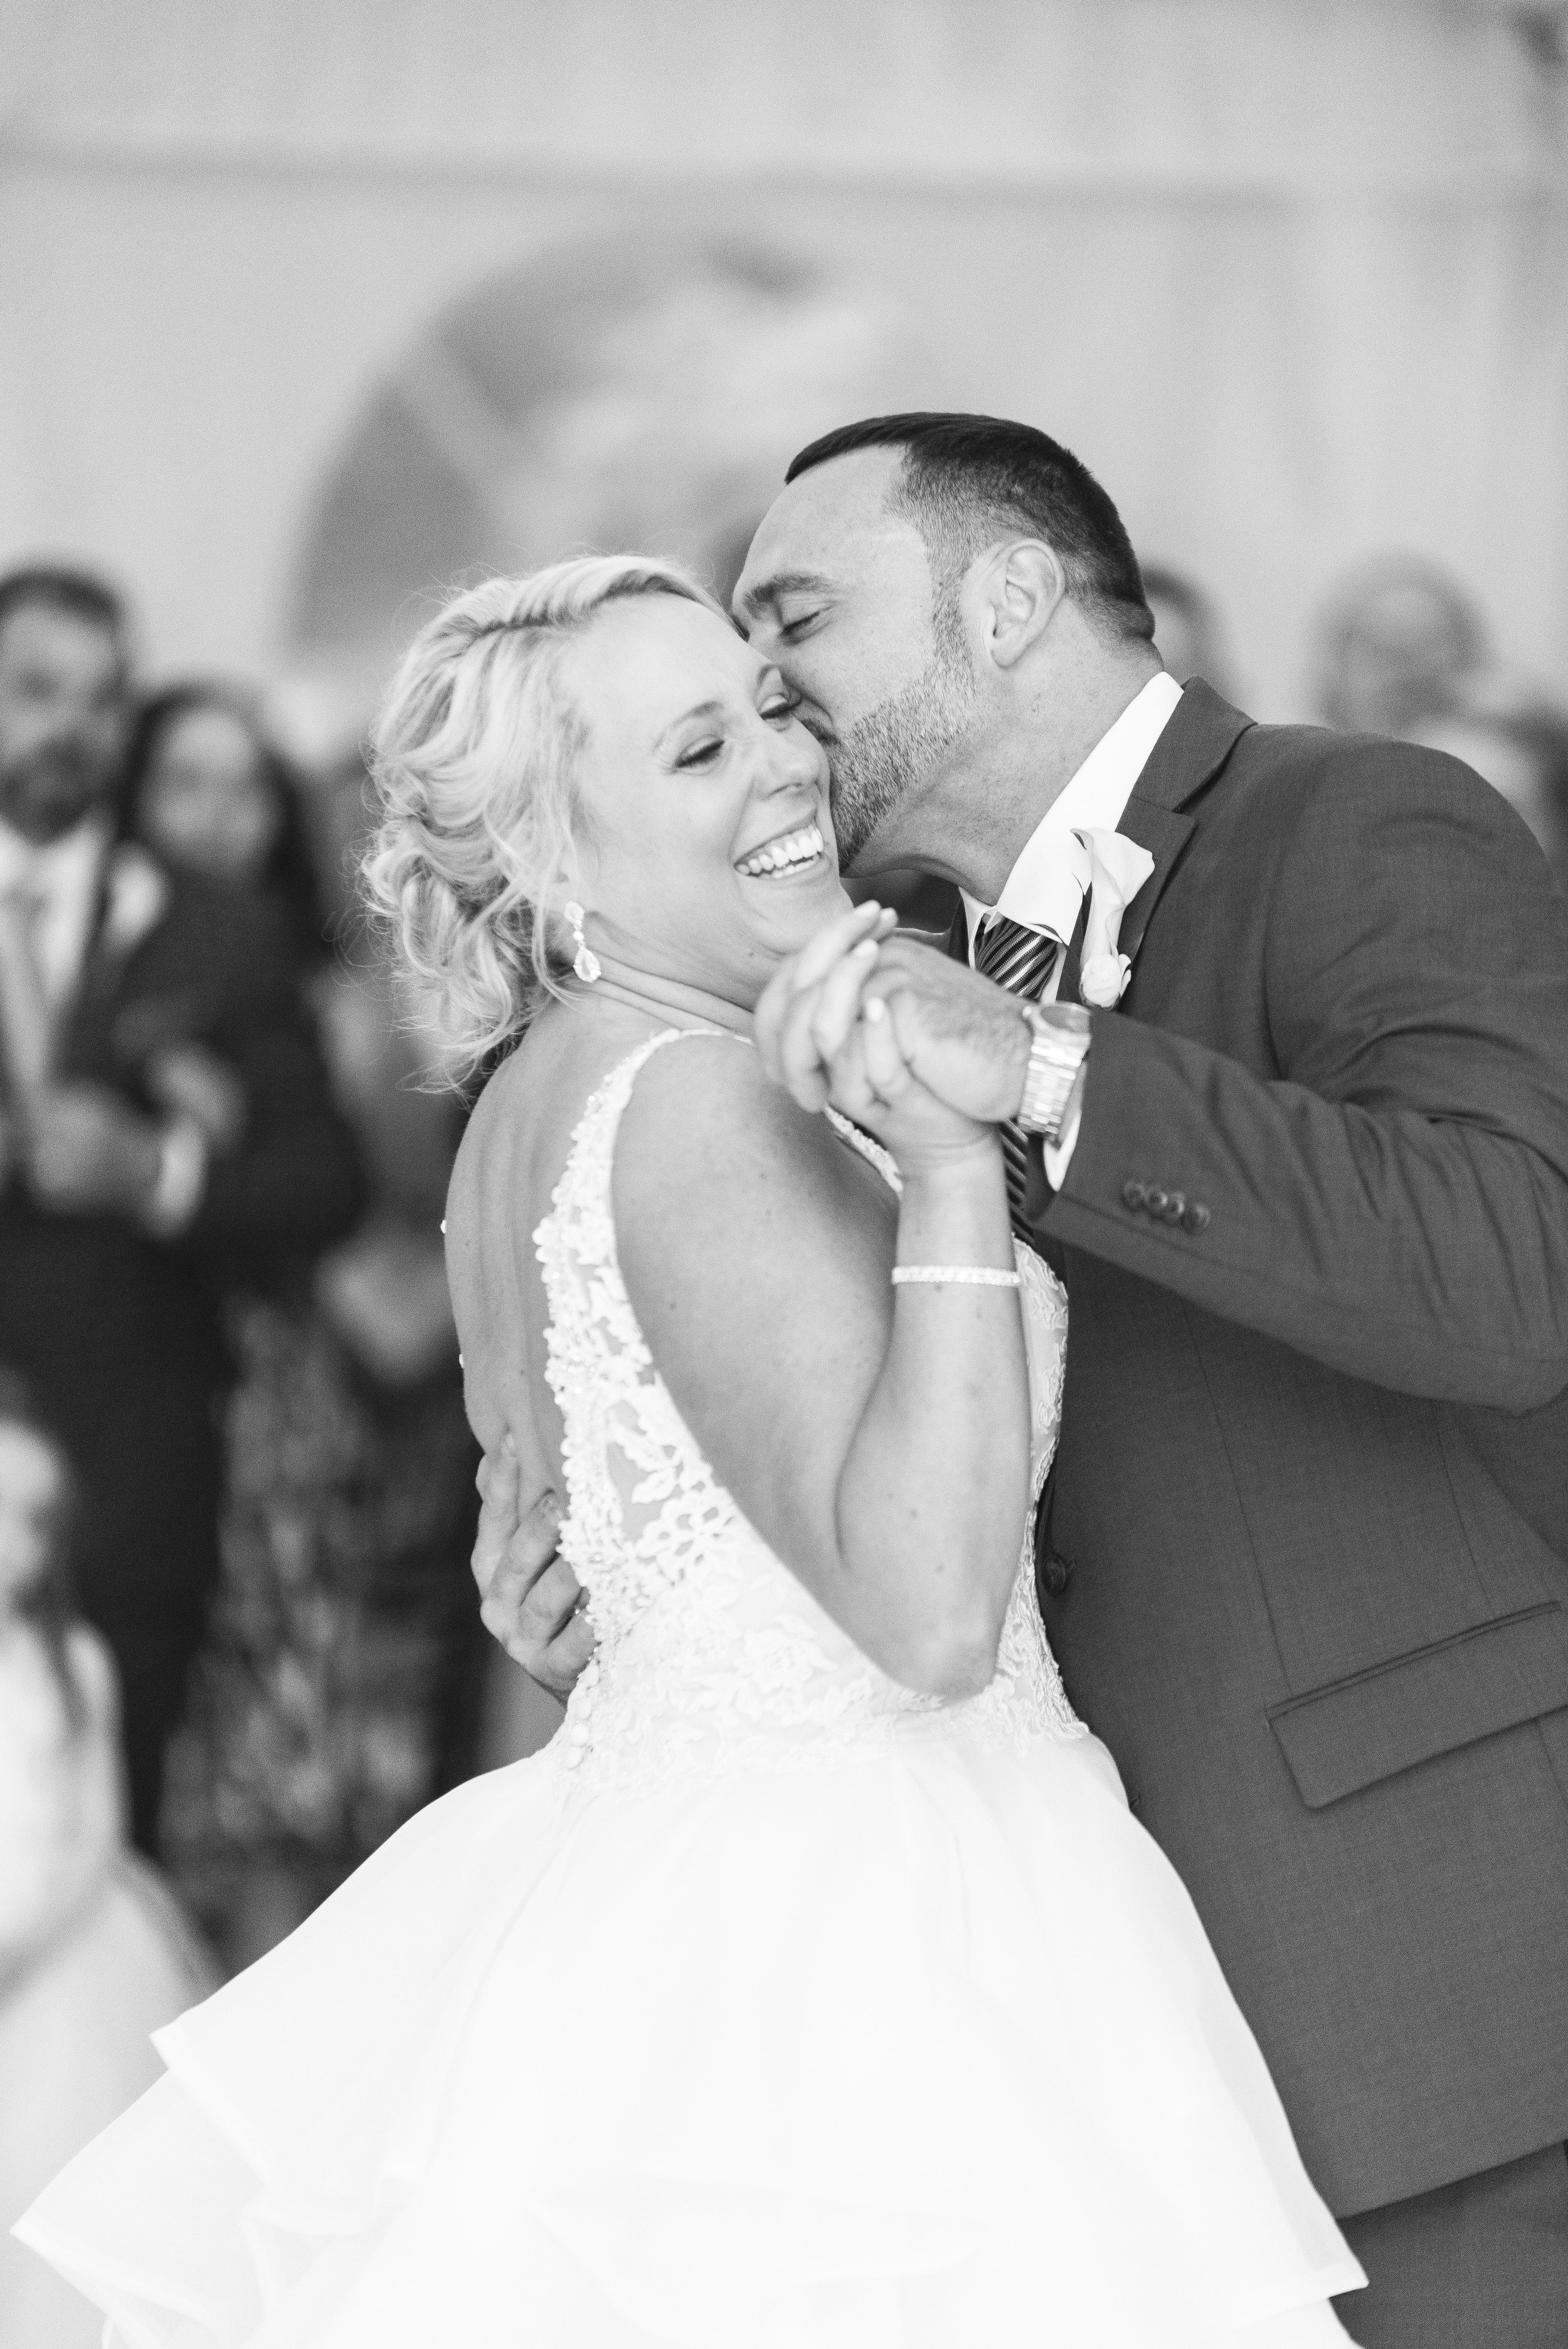 CAYLIE + ADAM - Shanna and Mike were PERFECT the day of our wedding. Their attention to detail was unmatched every step of the way! They treated us as if we were lifelong friends and made sure that everything that was important to us was captured!